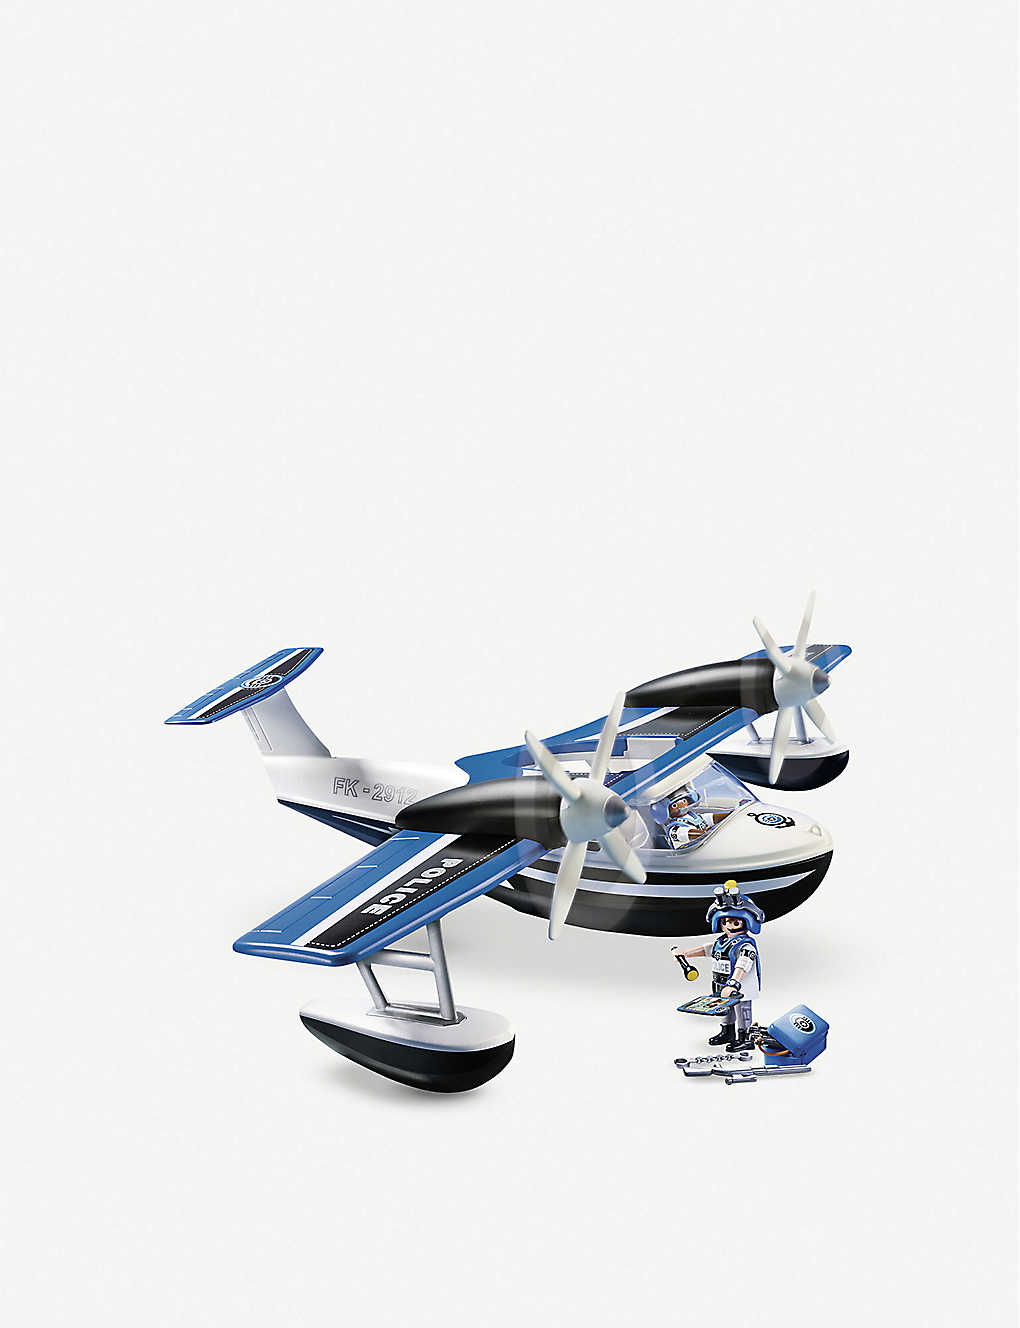 PLAYMOBIL: Action floating police seaplane playset